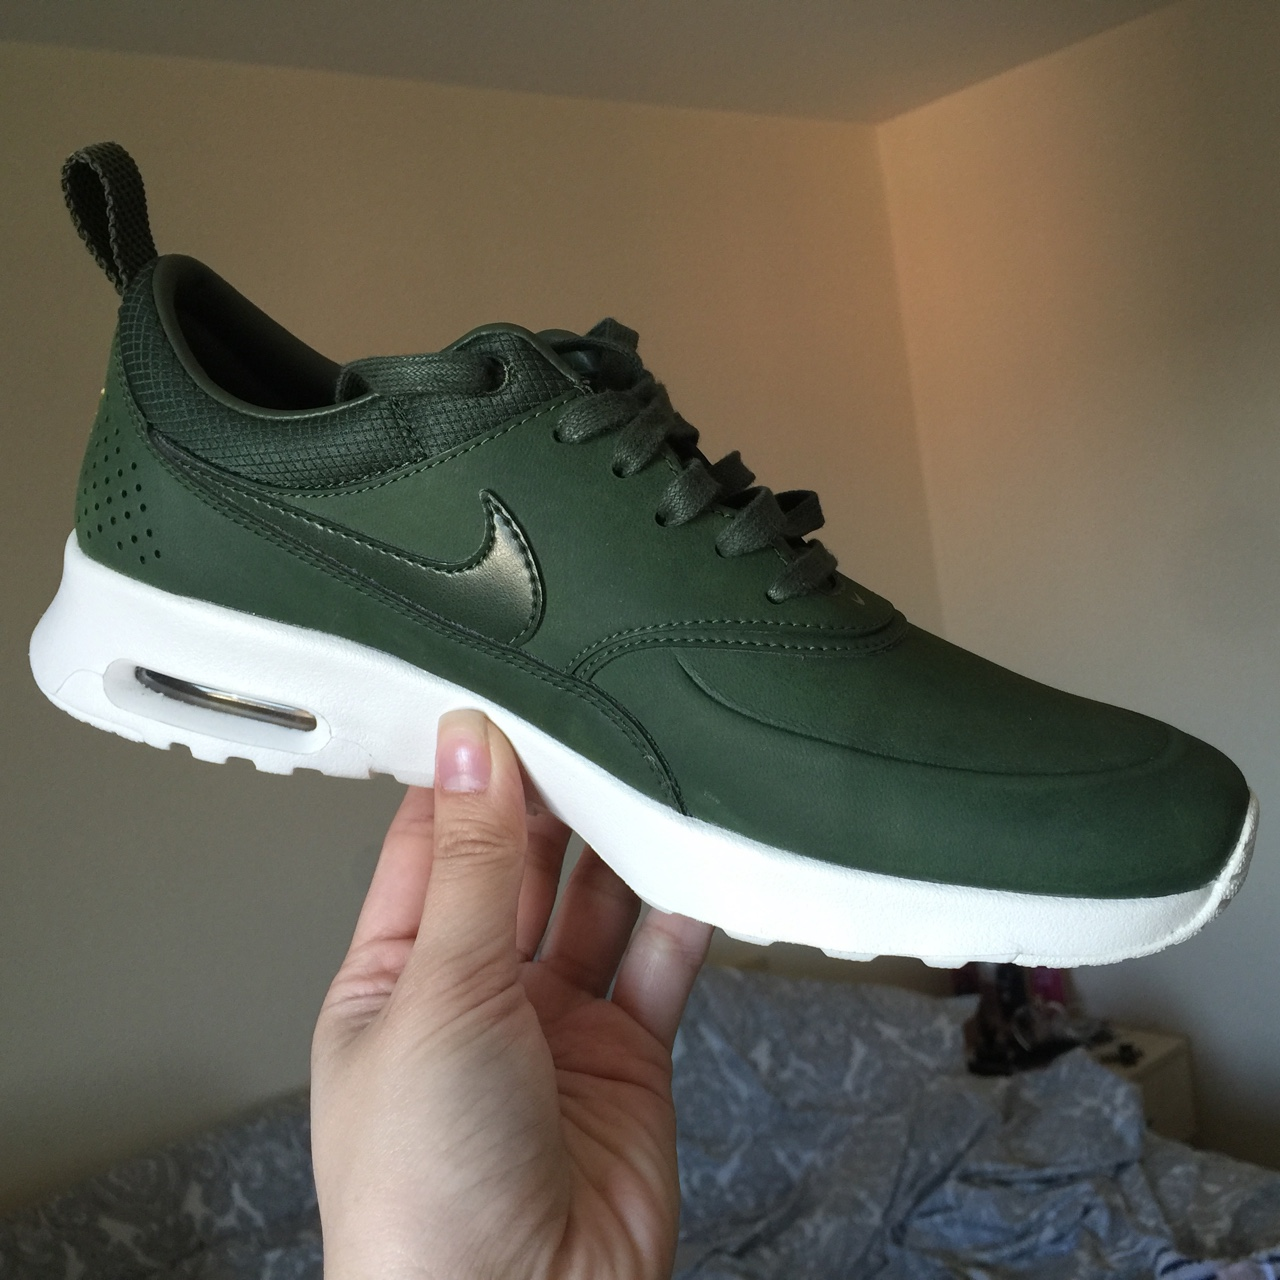 Details about Nike Air Max Thea PRM 616723 304 Green White Women's Shoes #12